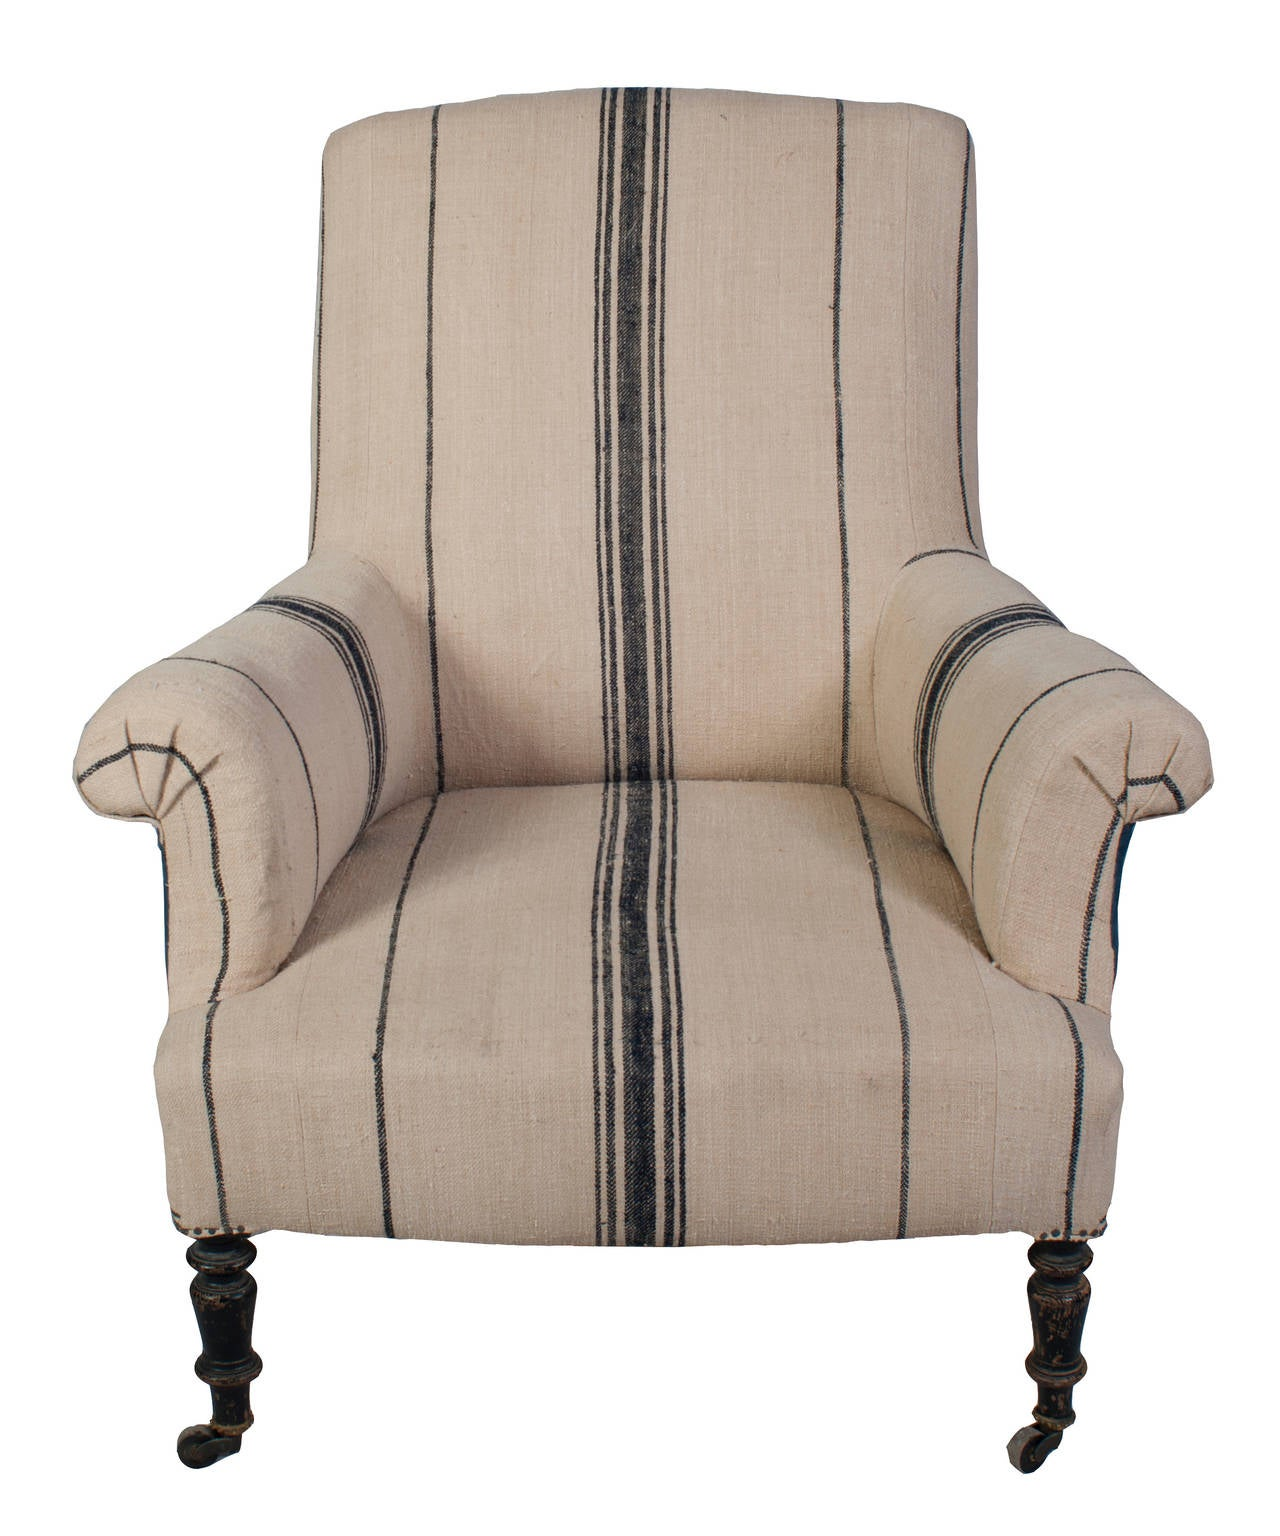 napoleon iii fauteuil and foot stool covered in blue band antique hemp for sale at 1stdibs. Black Bedroom Furniture Sets. Home Design Ideas